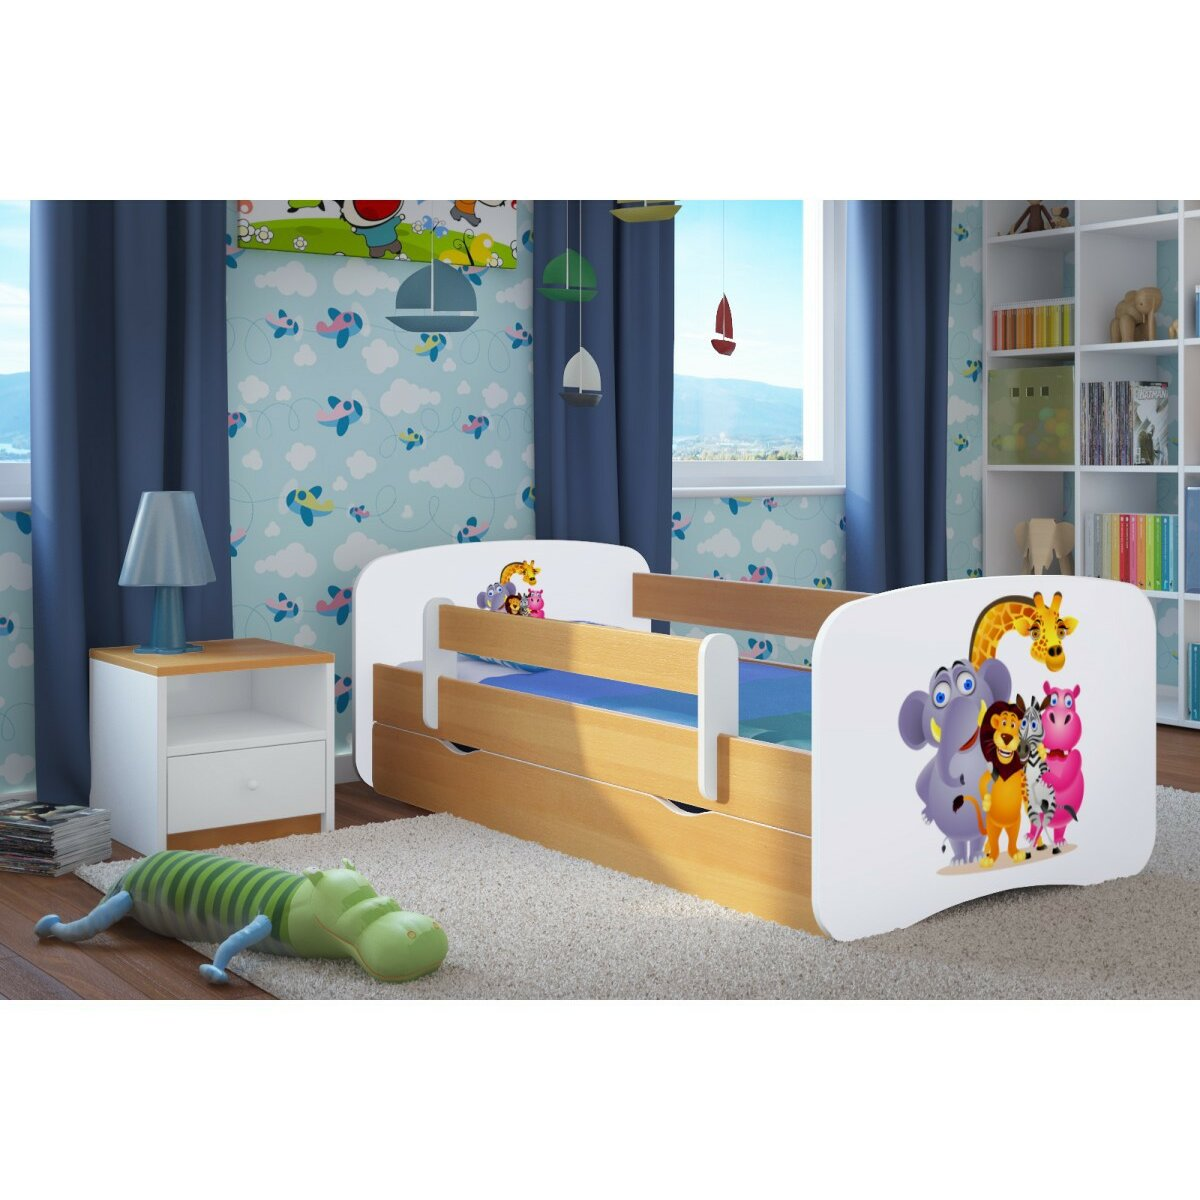 kocot kids kinderbett zoo mit matratze und schublade bewertungen. Black Bedroom Furniture Sets. Home Design Ideas